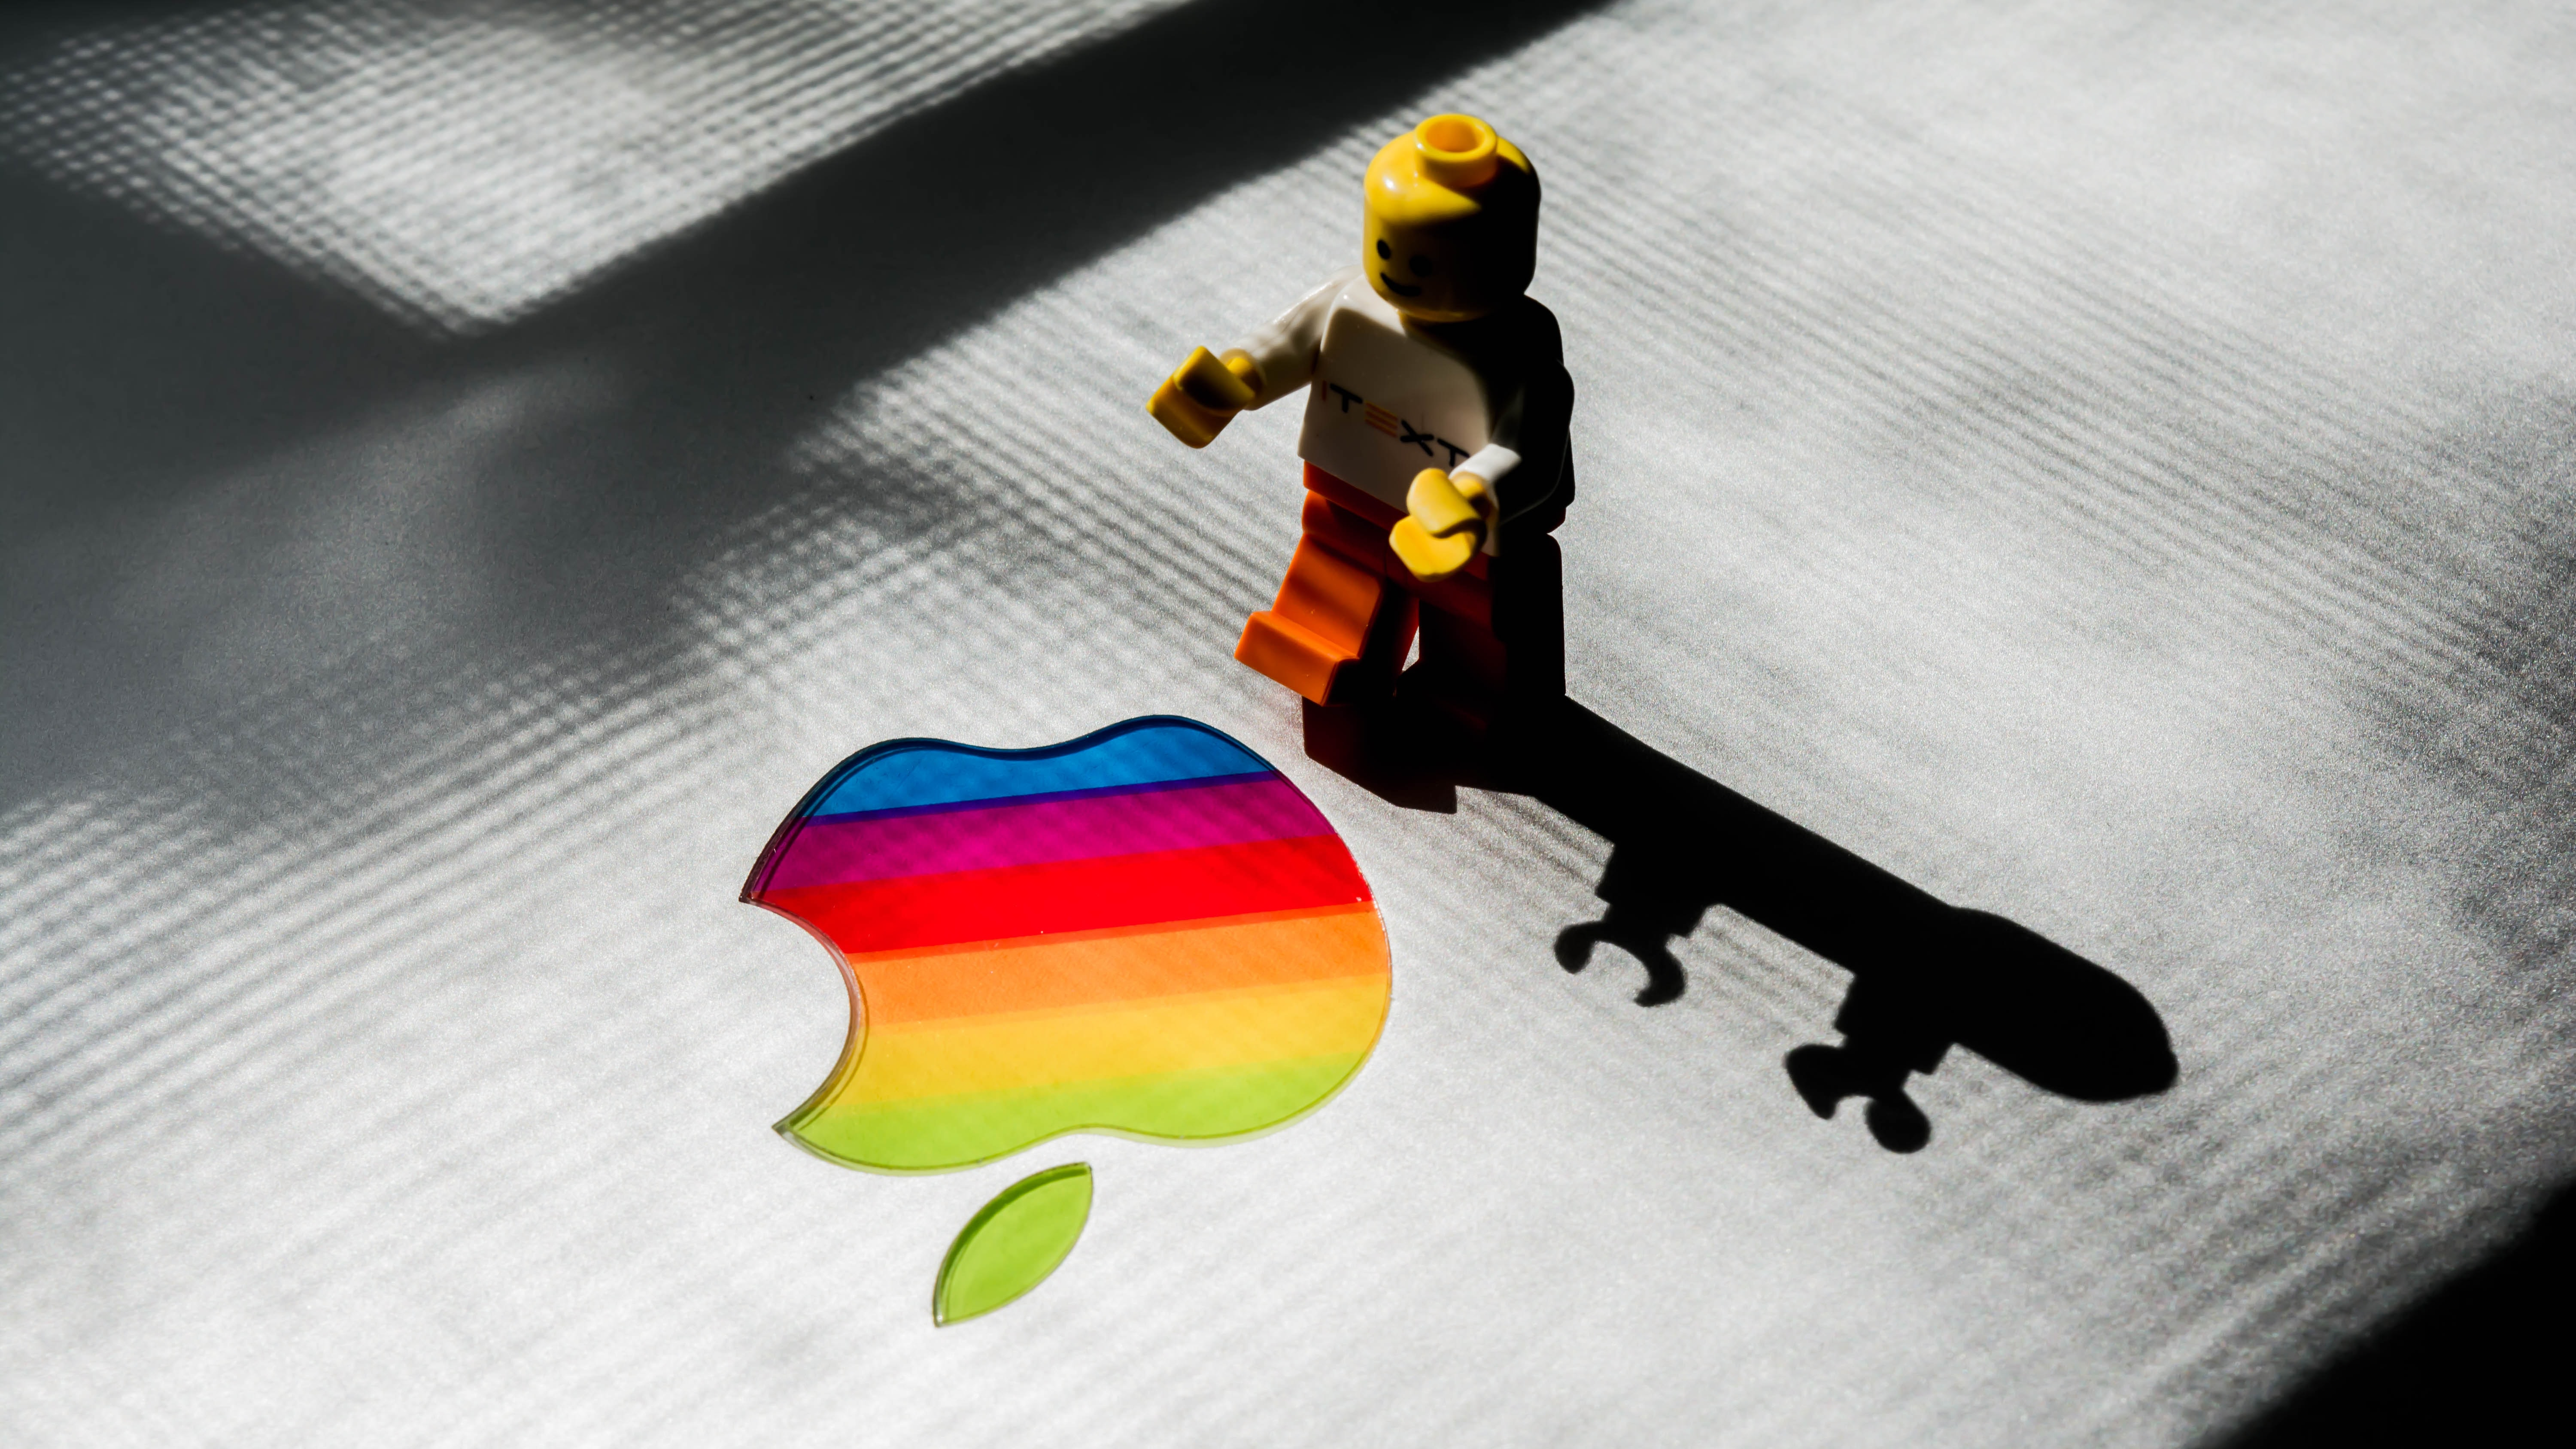 LEGO mini fig beside rainbow Apple logo